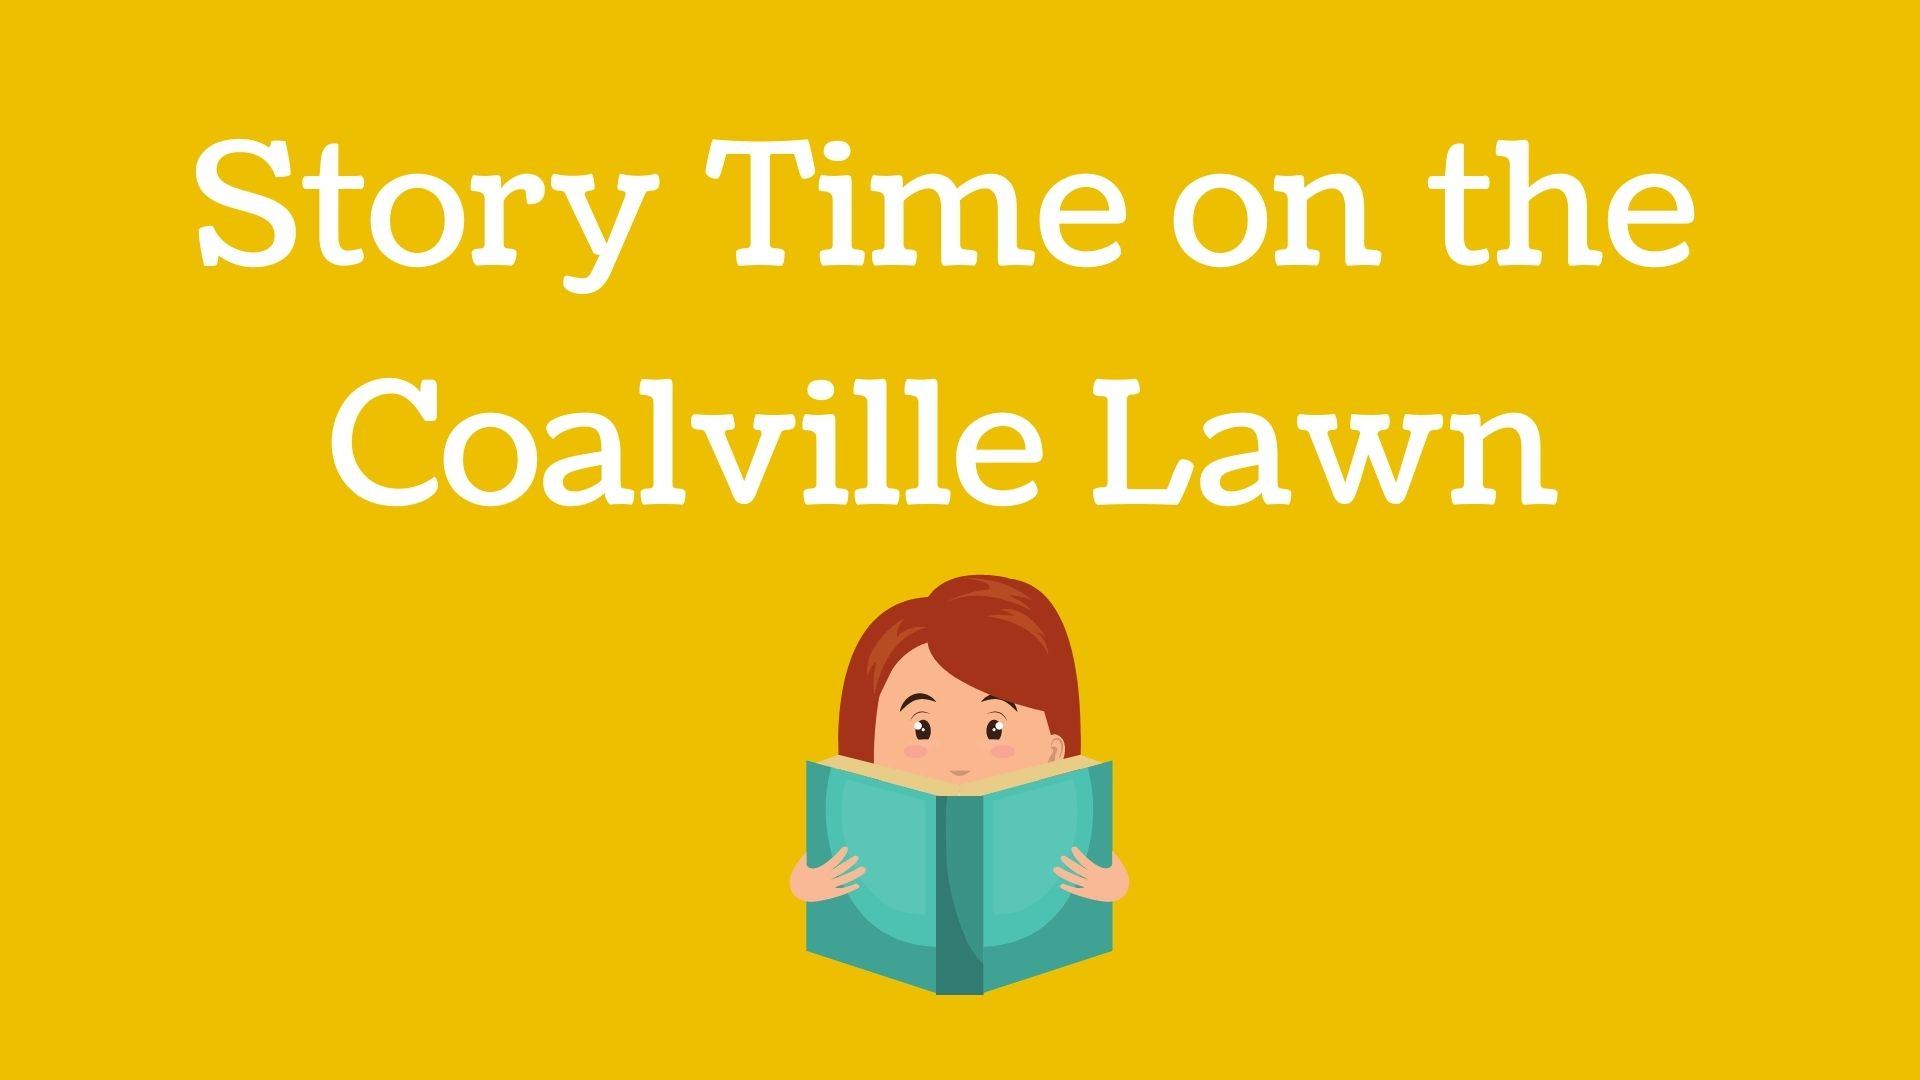 Storytime on the Coalville Lawn